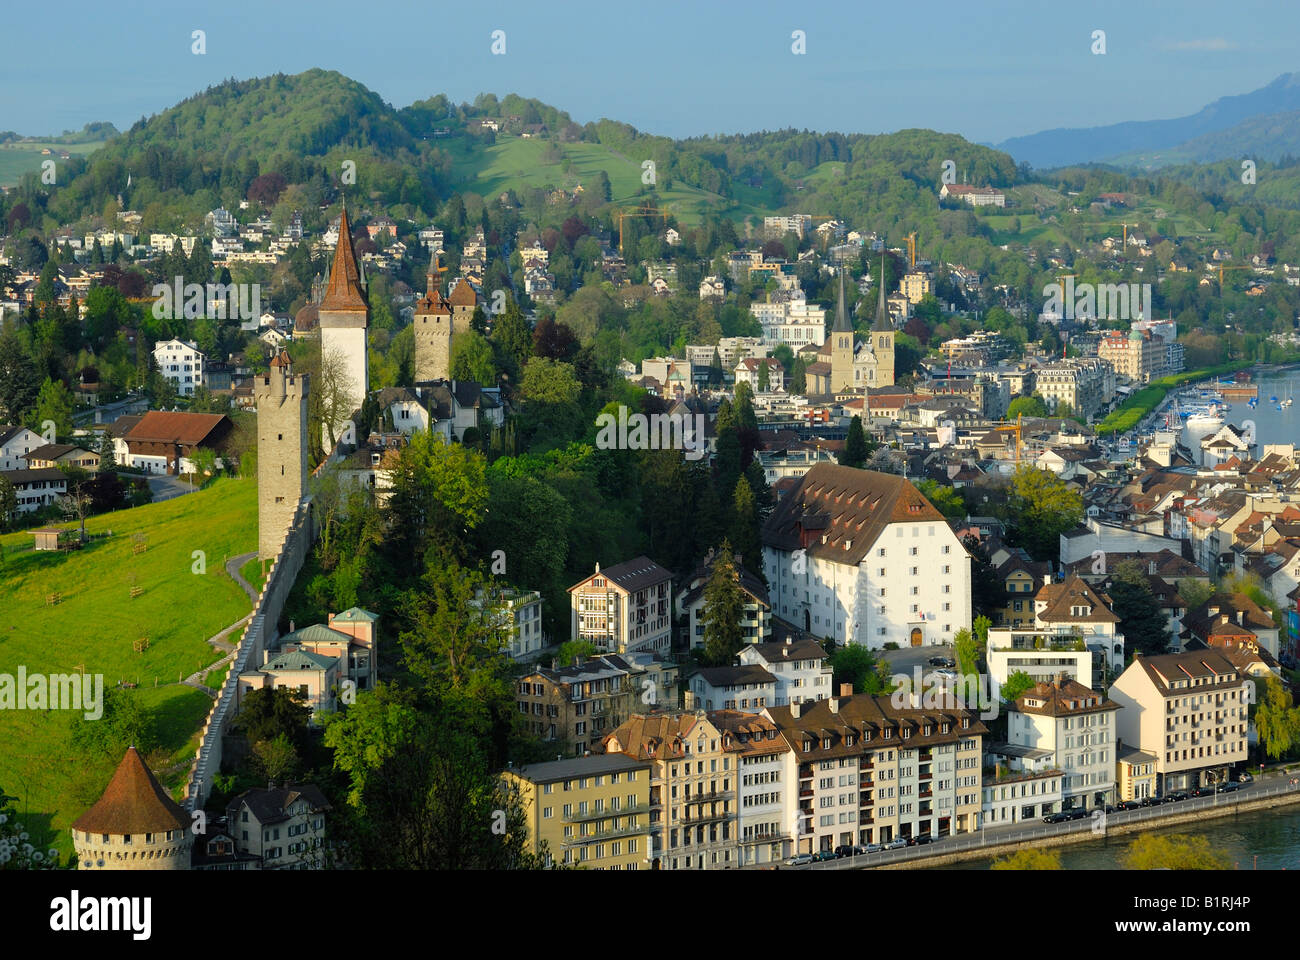 View of the historic centre with the historic Town Wall, Luzerne, Canton of Luzerne, Switzerland, Europe - Stock Image